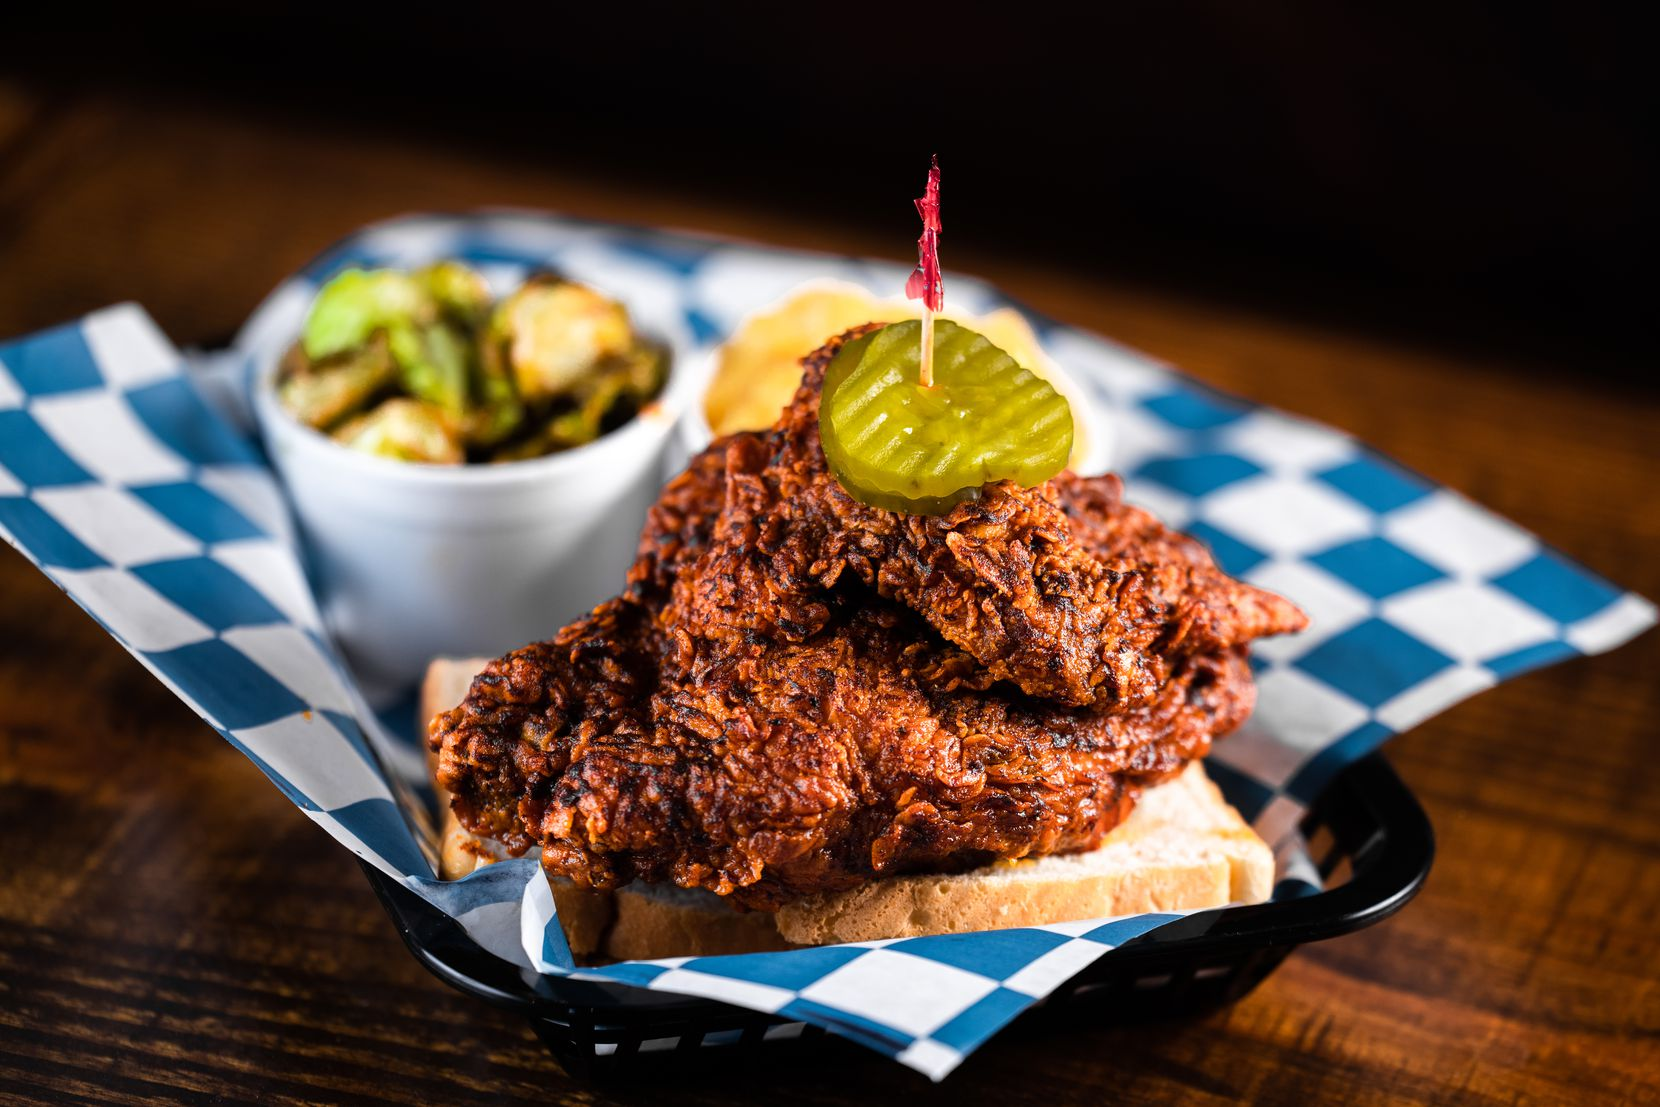 Palmer's Hot Chicken opened Oct. 17, 2020 at Mockingbird Lane and Abrams Road in the Lakewood neighborhood of Dallas.